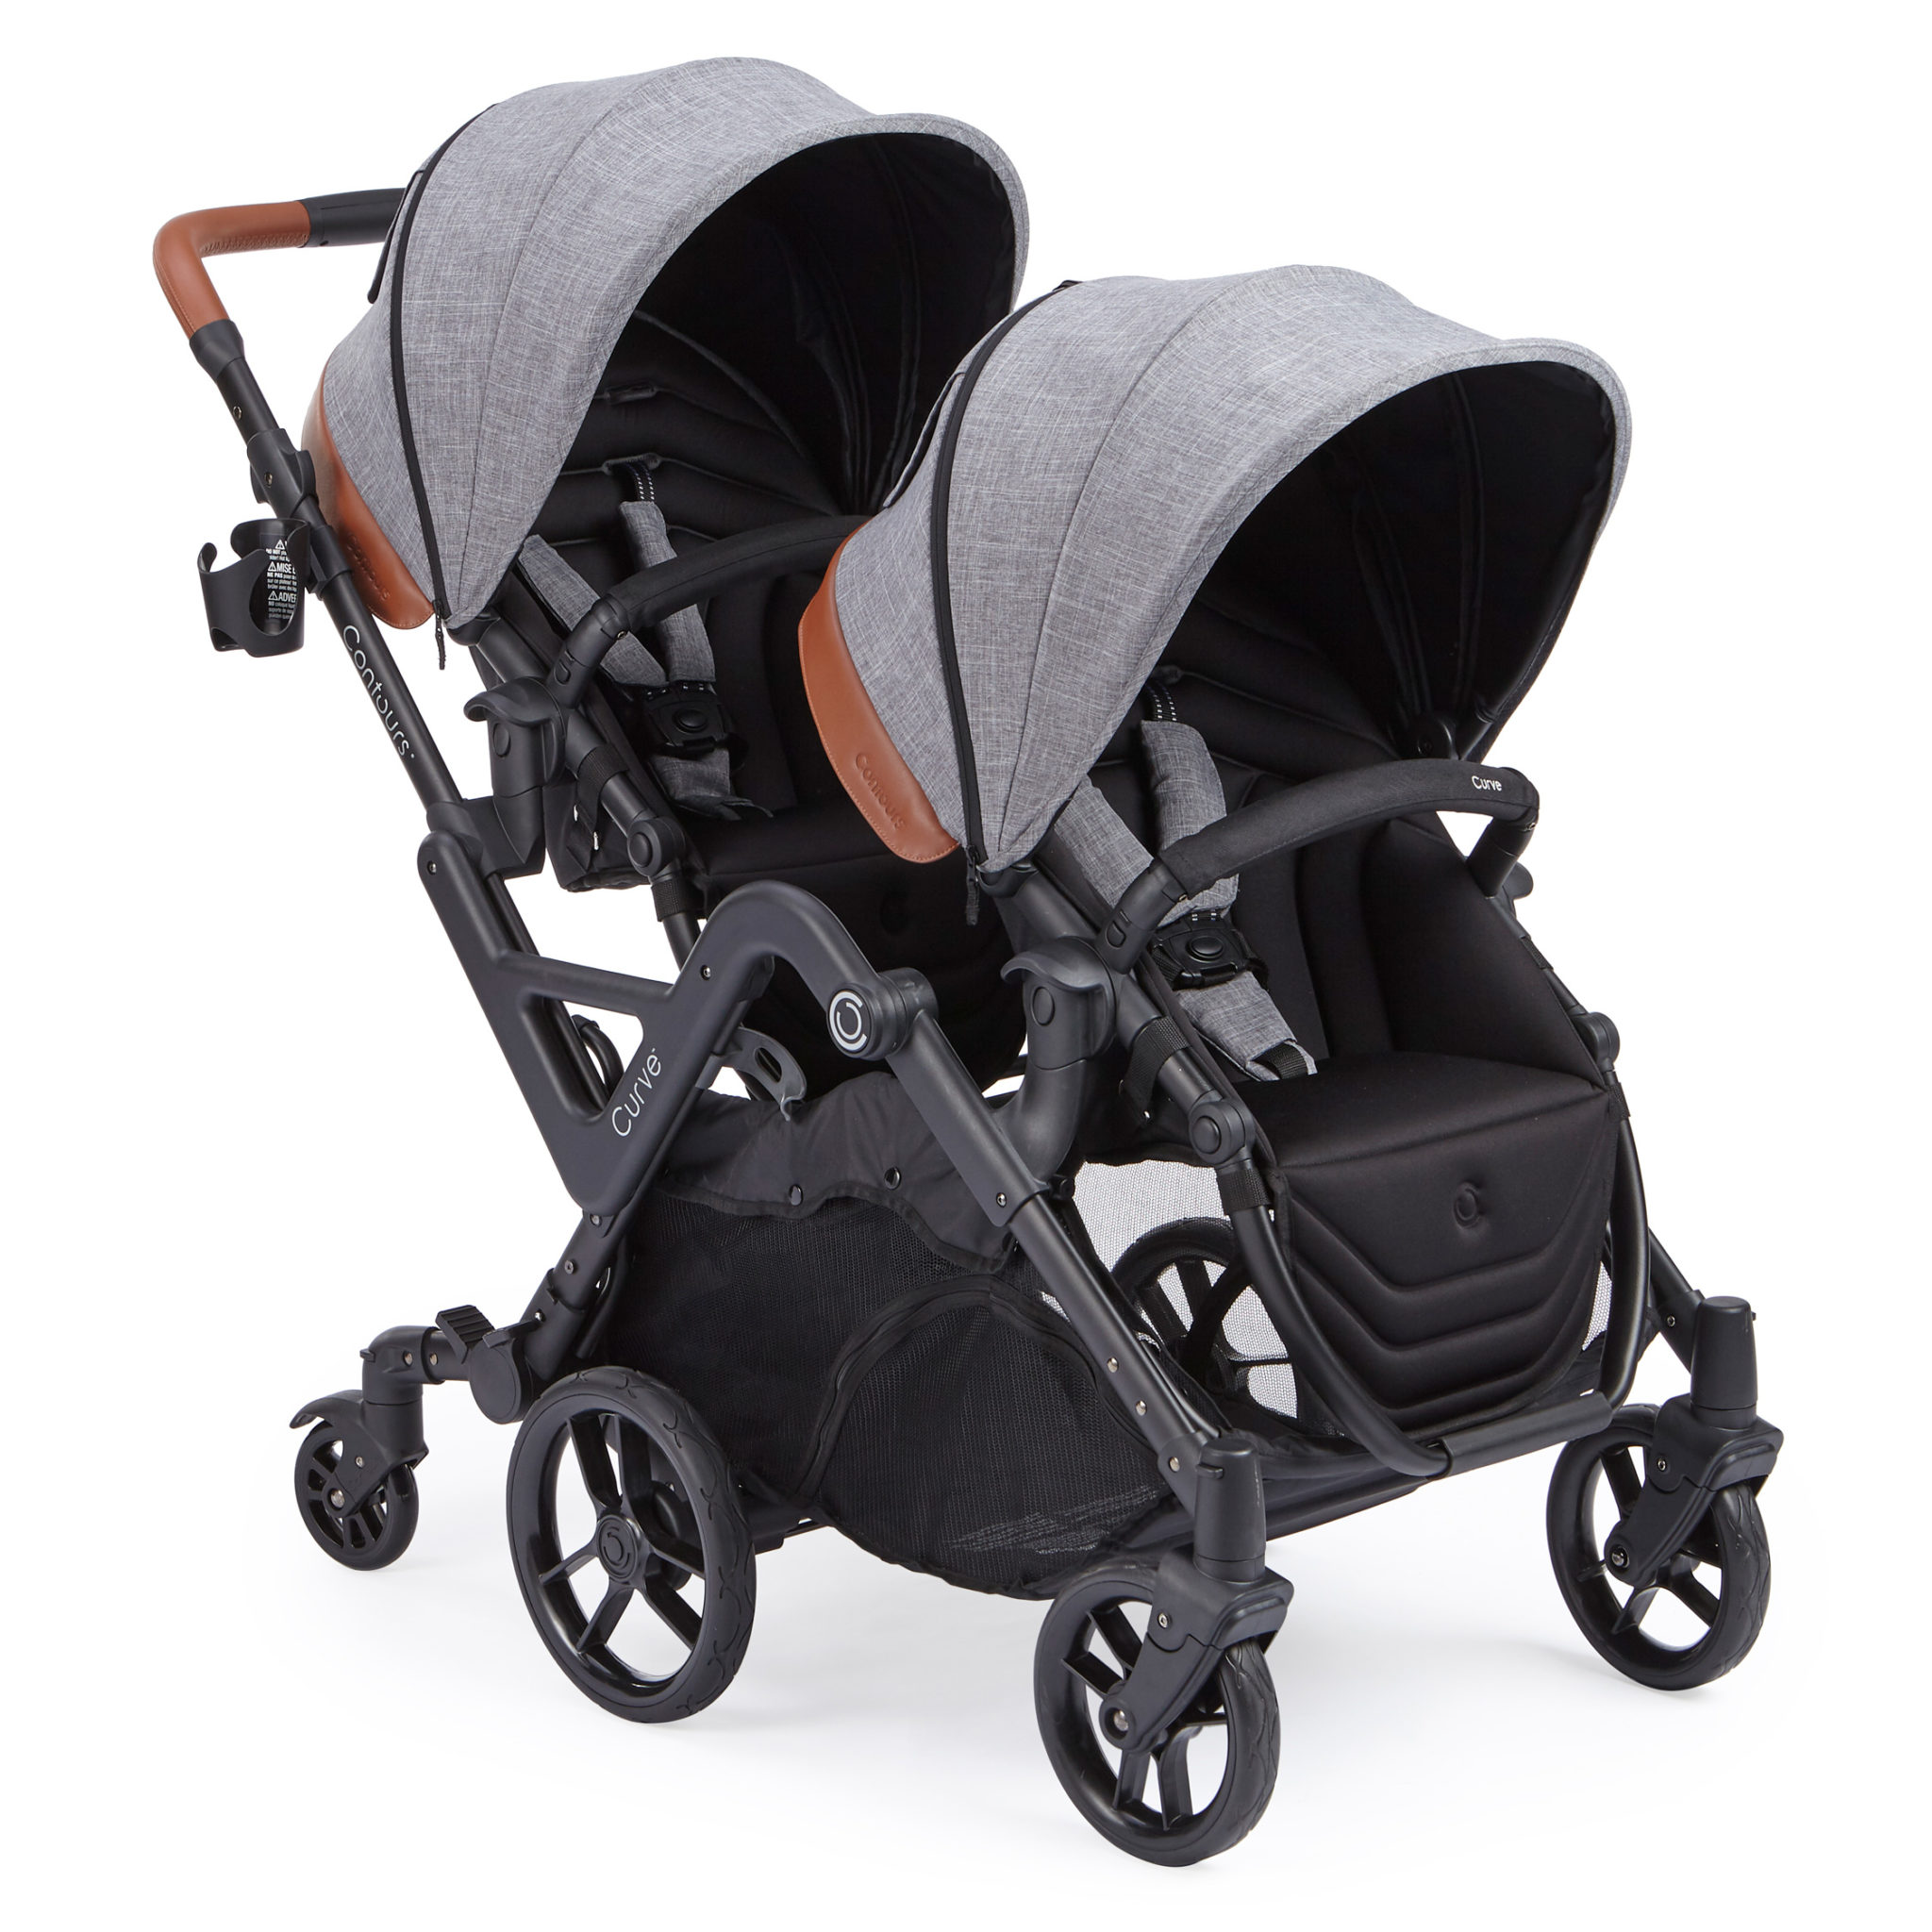 Toddler Stroller India Double Stroller Baby Carrier Compact Stroller Contours